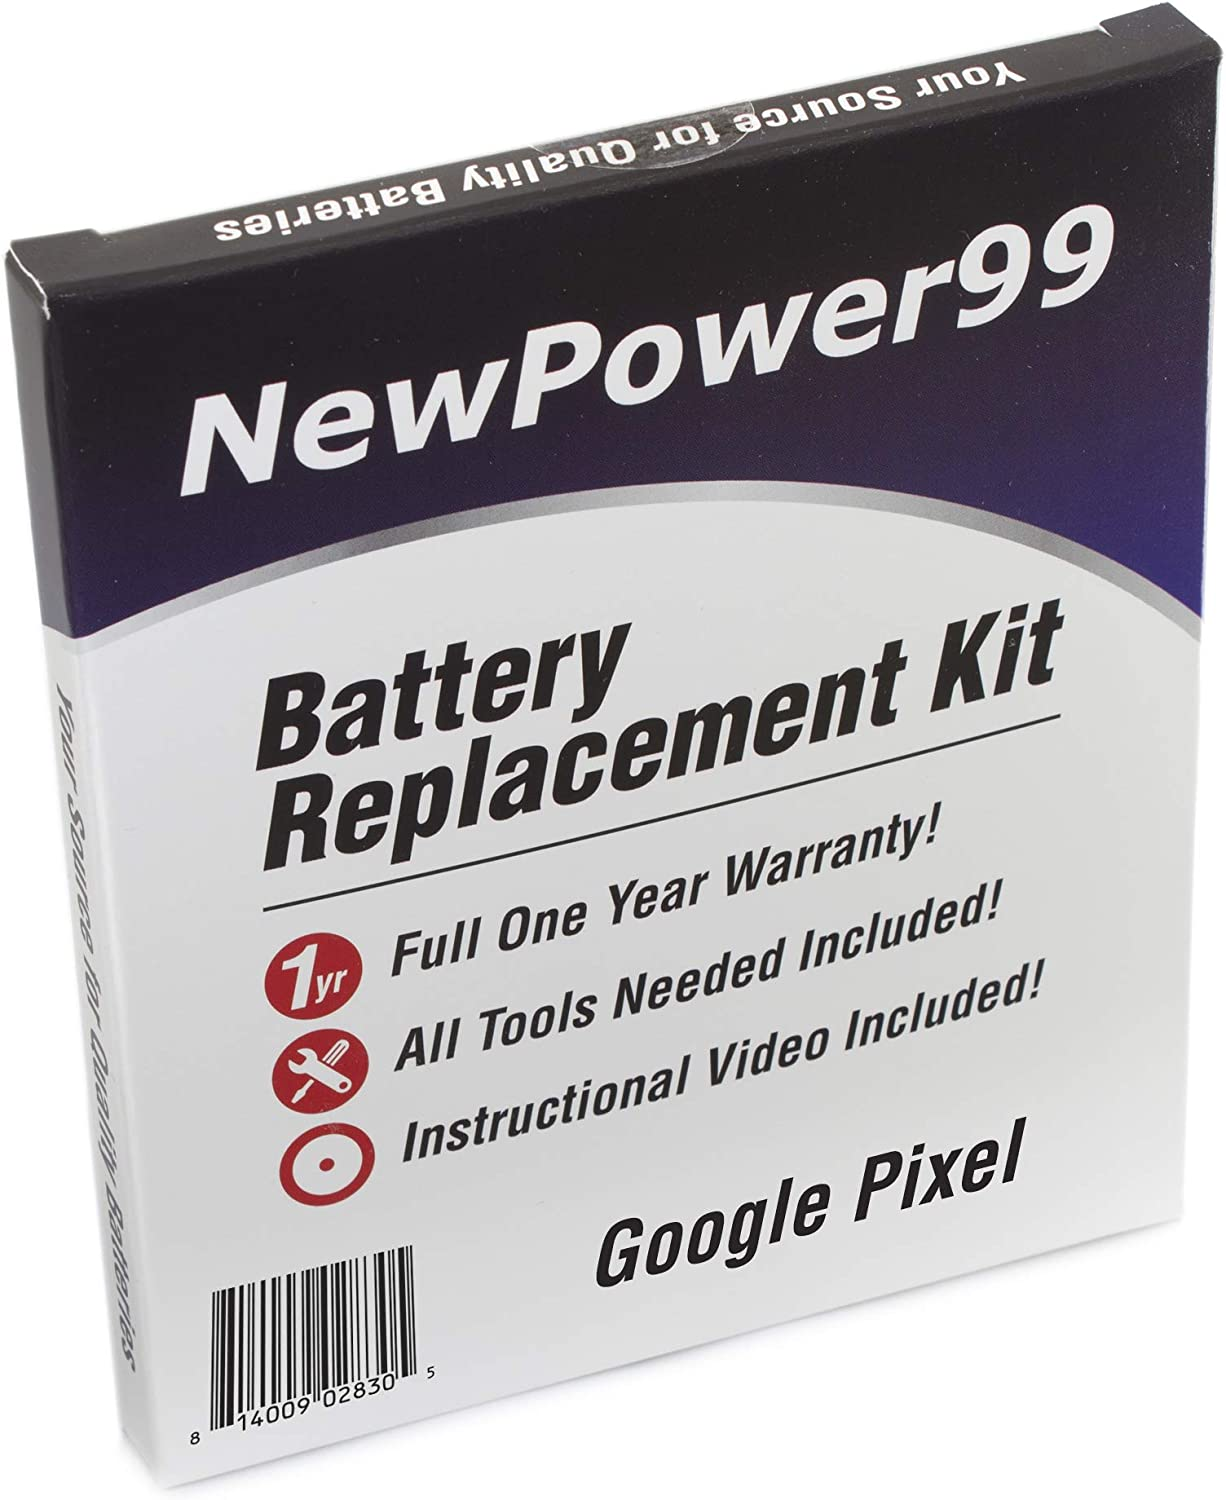 Long Lasting Battery from NewPower99 How-to Video Battery Kit for Google Pixel with Tools